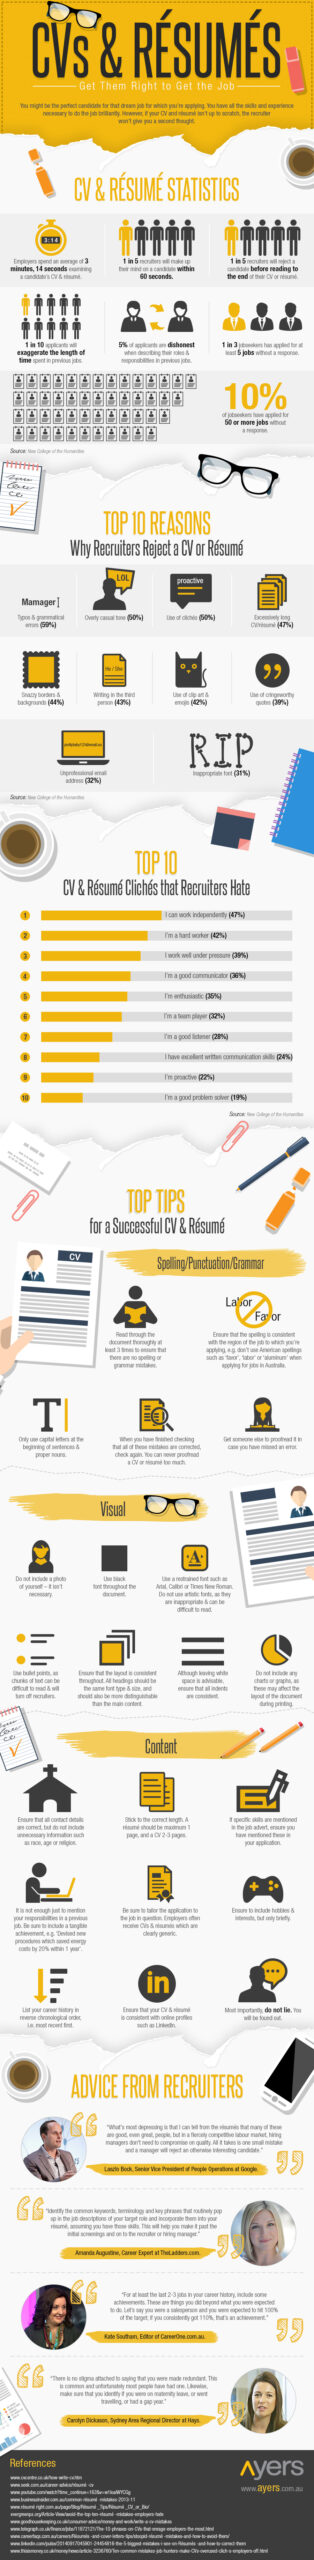 top tips for writing successful cv and resume office skills blog advice with cvs resumes Resume Advice With Resume Writing